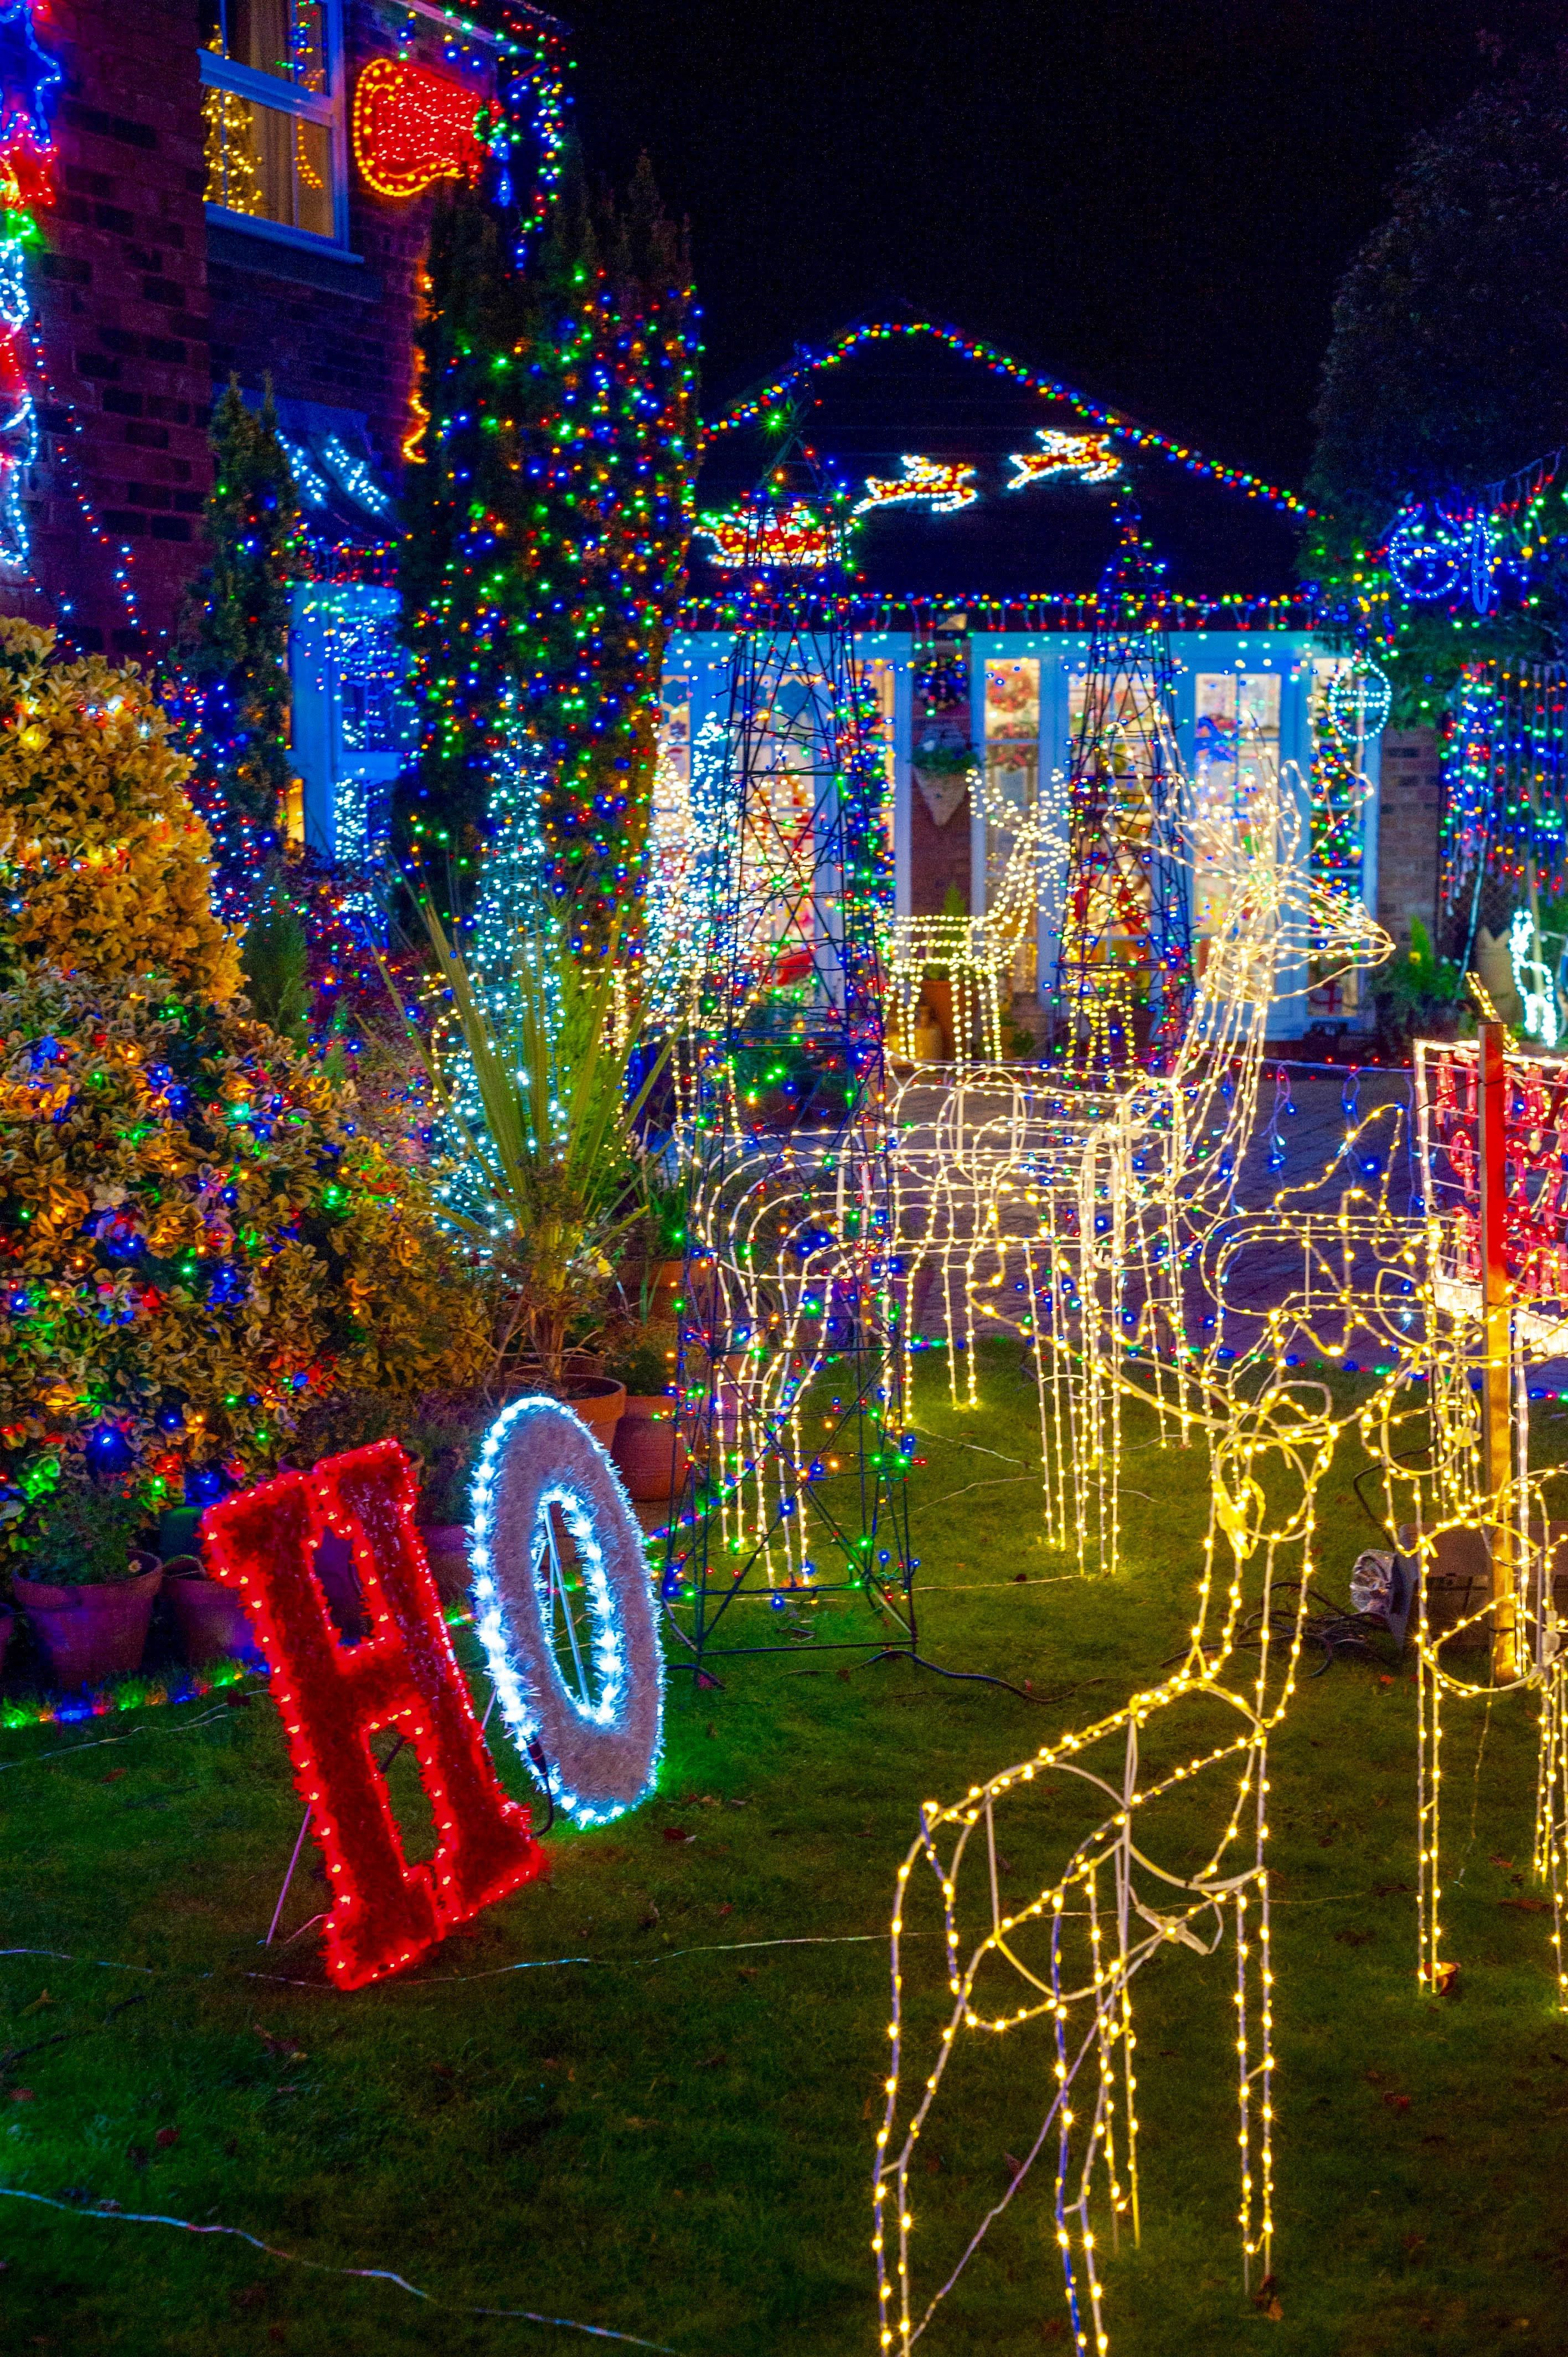 'Why We Decorate Our House With More Than 30,000 Christmas Lights Each